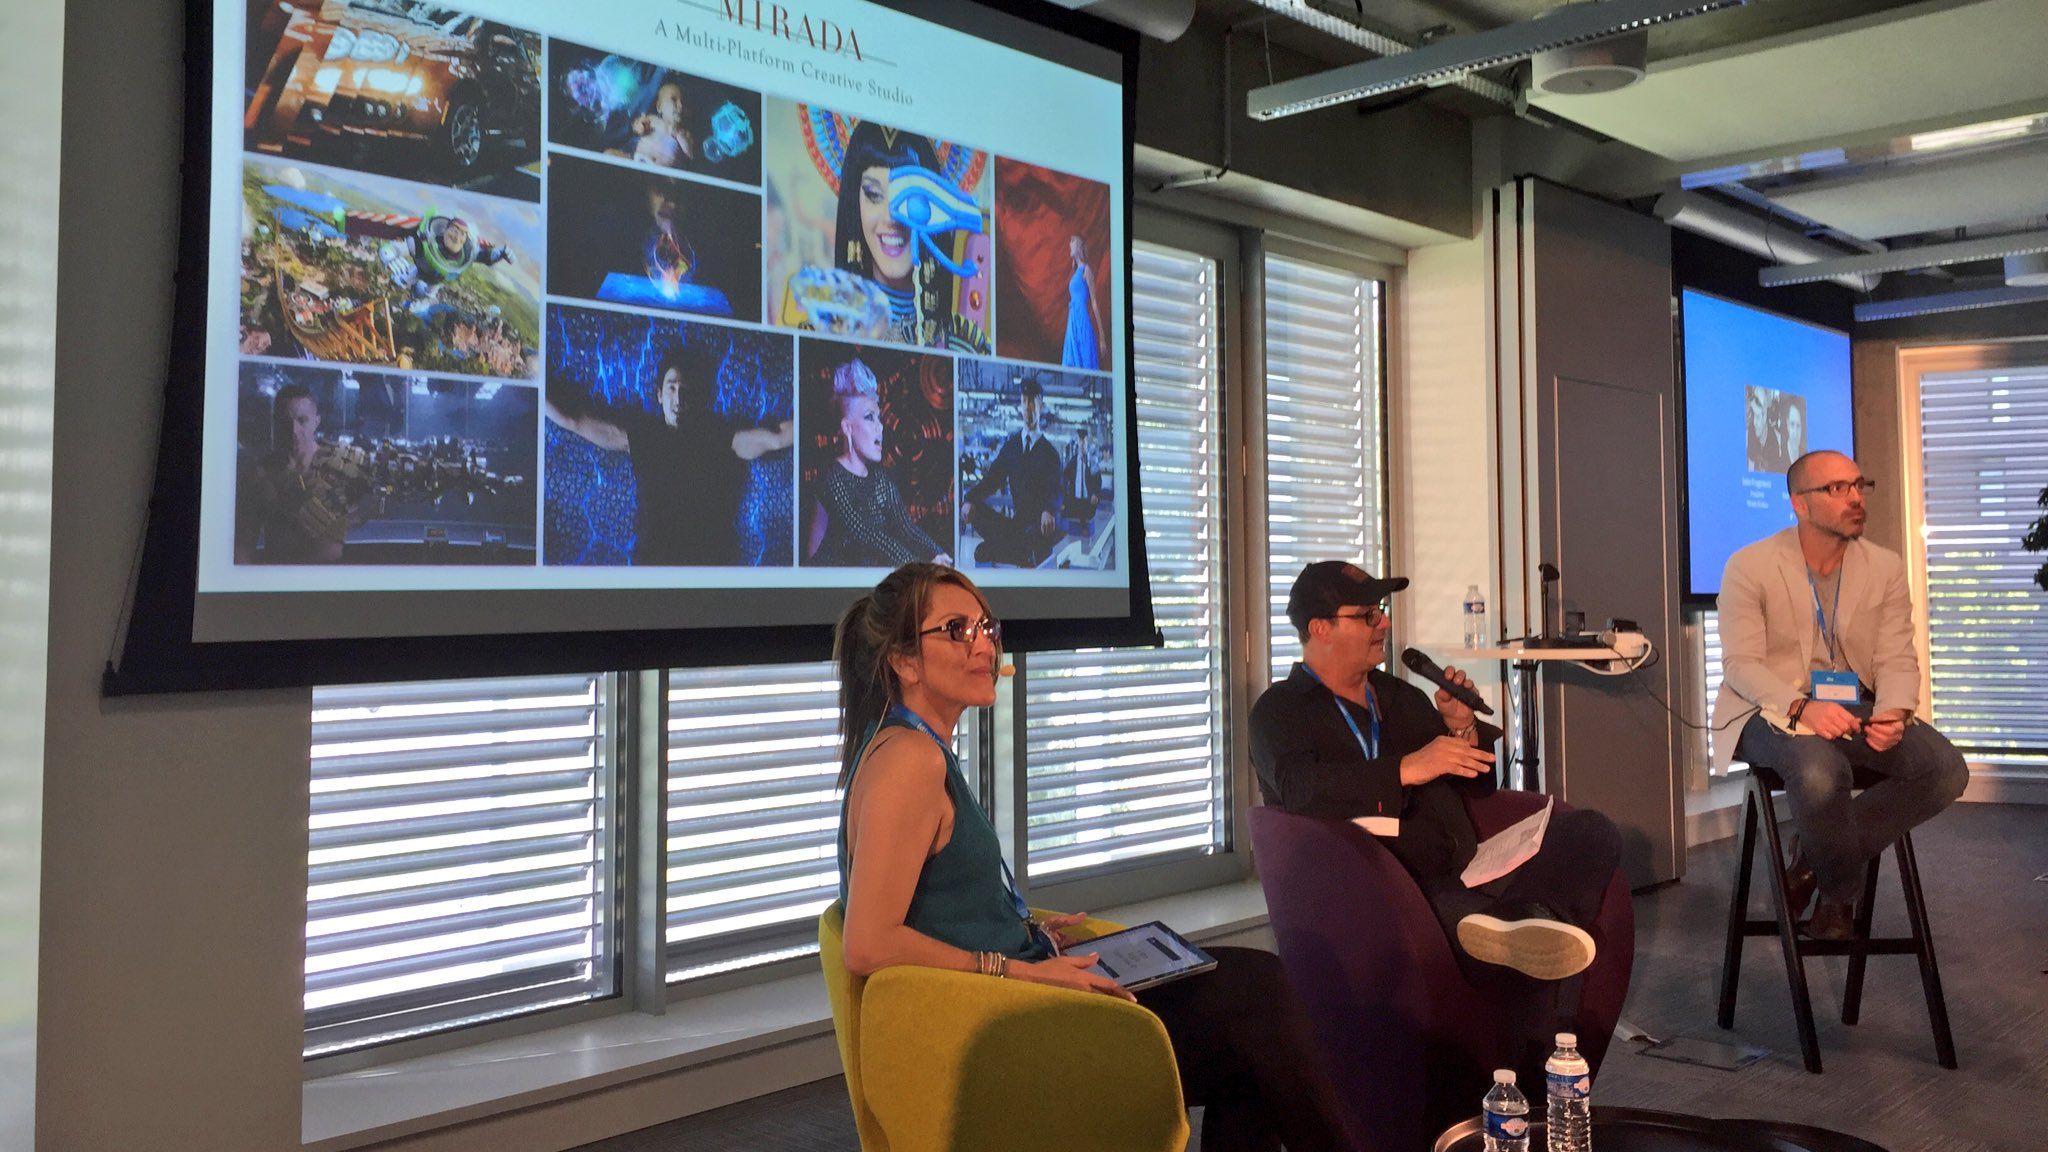 The audience will become the protagonist of #VR contents : huge change for film directors @MiradaStudios #dive2016 https://t.co/Iv3lp79EsX